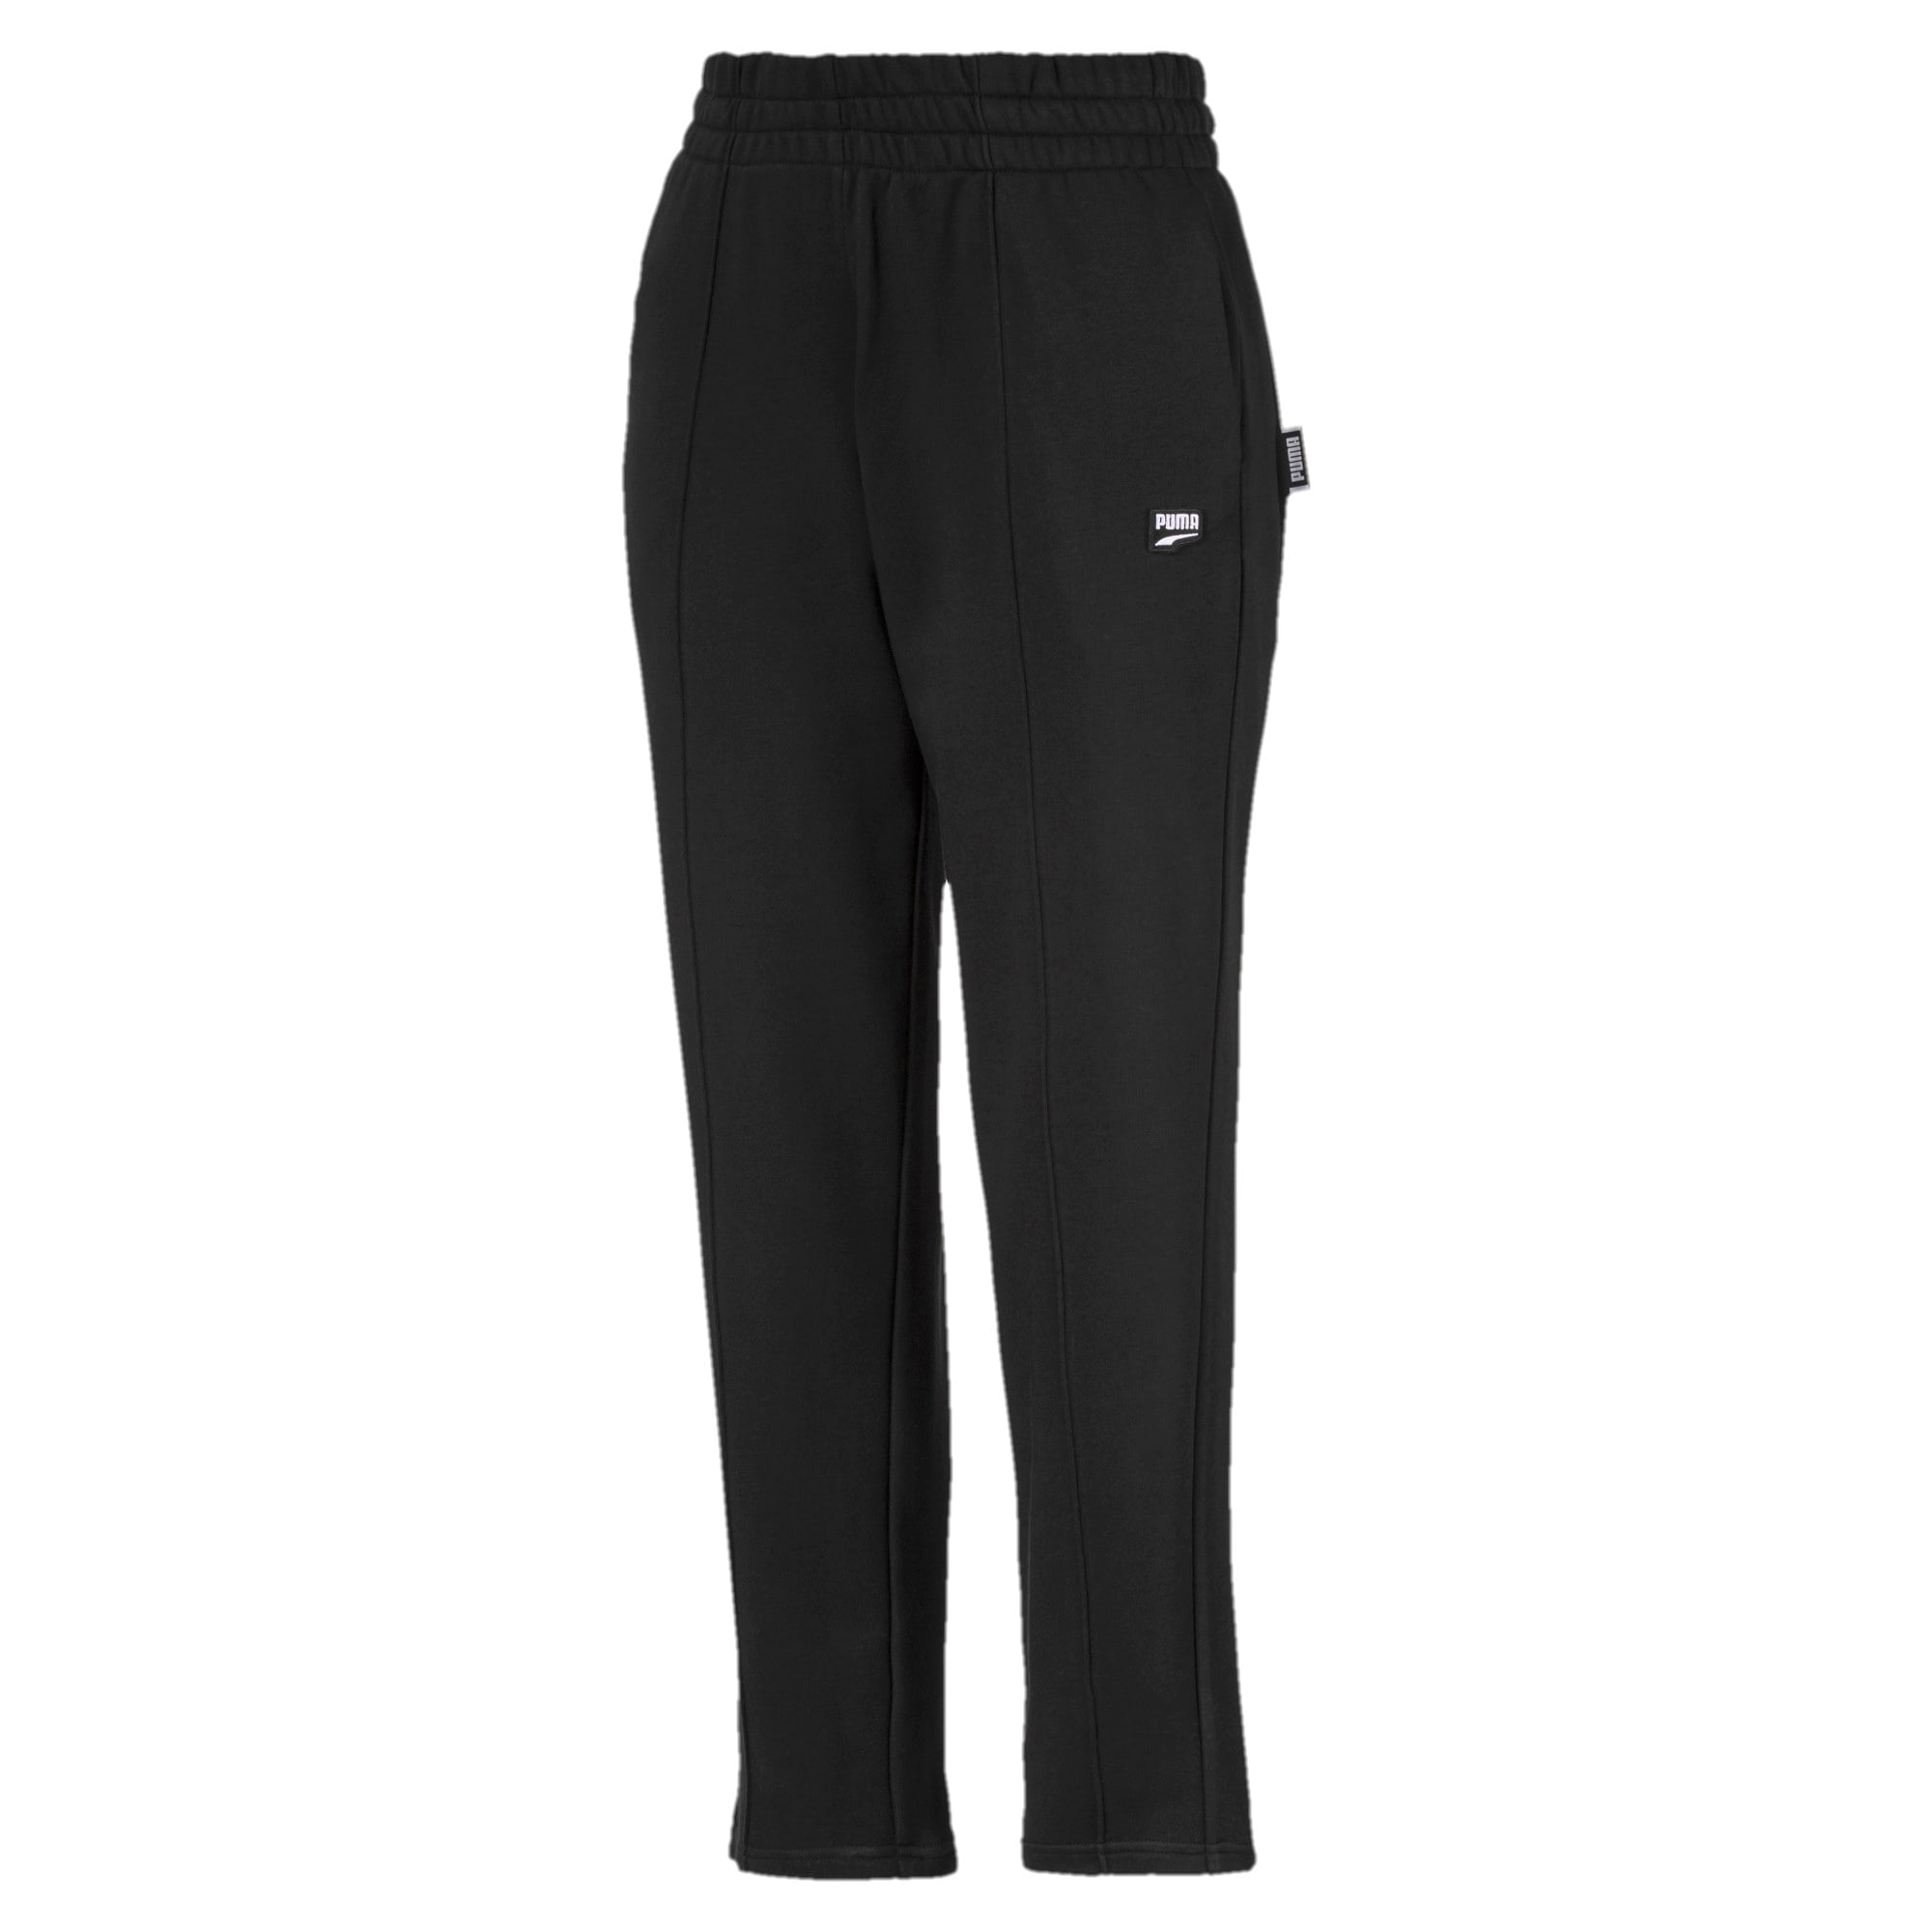 Thumbnail 4 of Downtown Knitted Women's Pants, Puma Black, medium